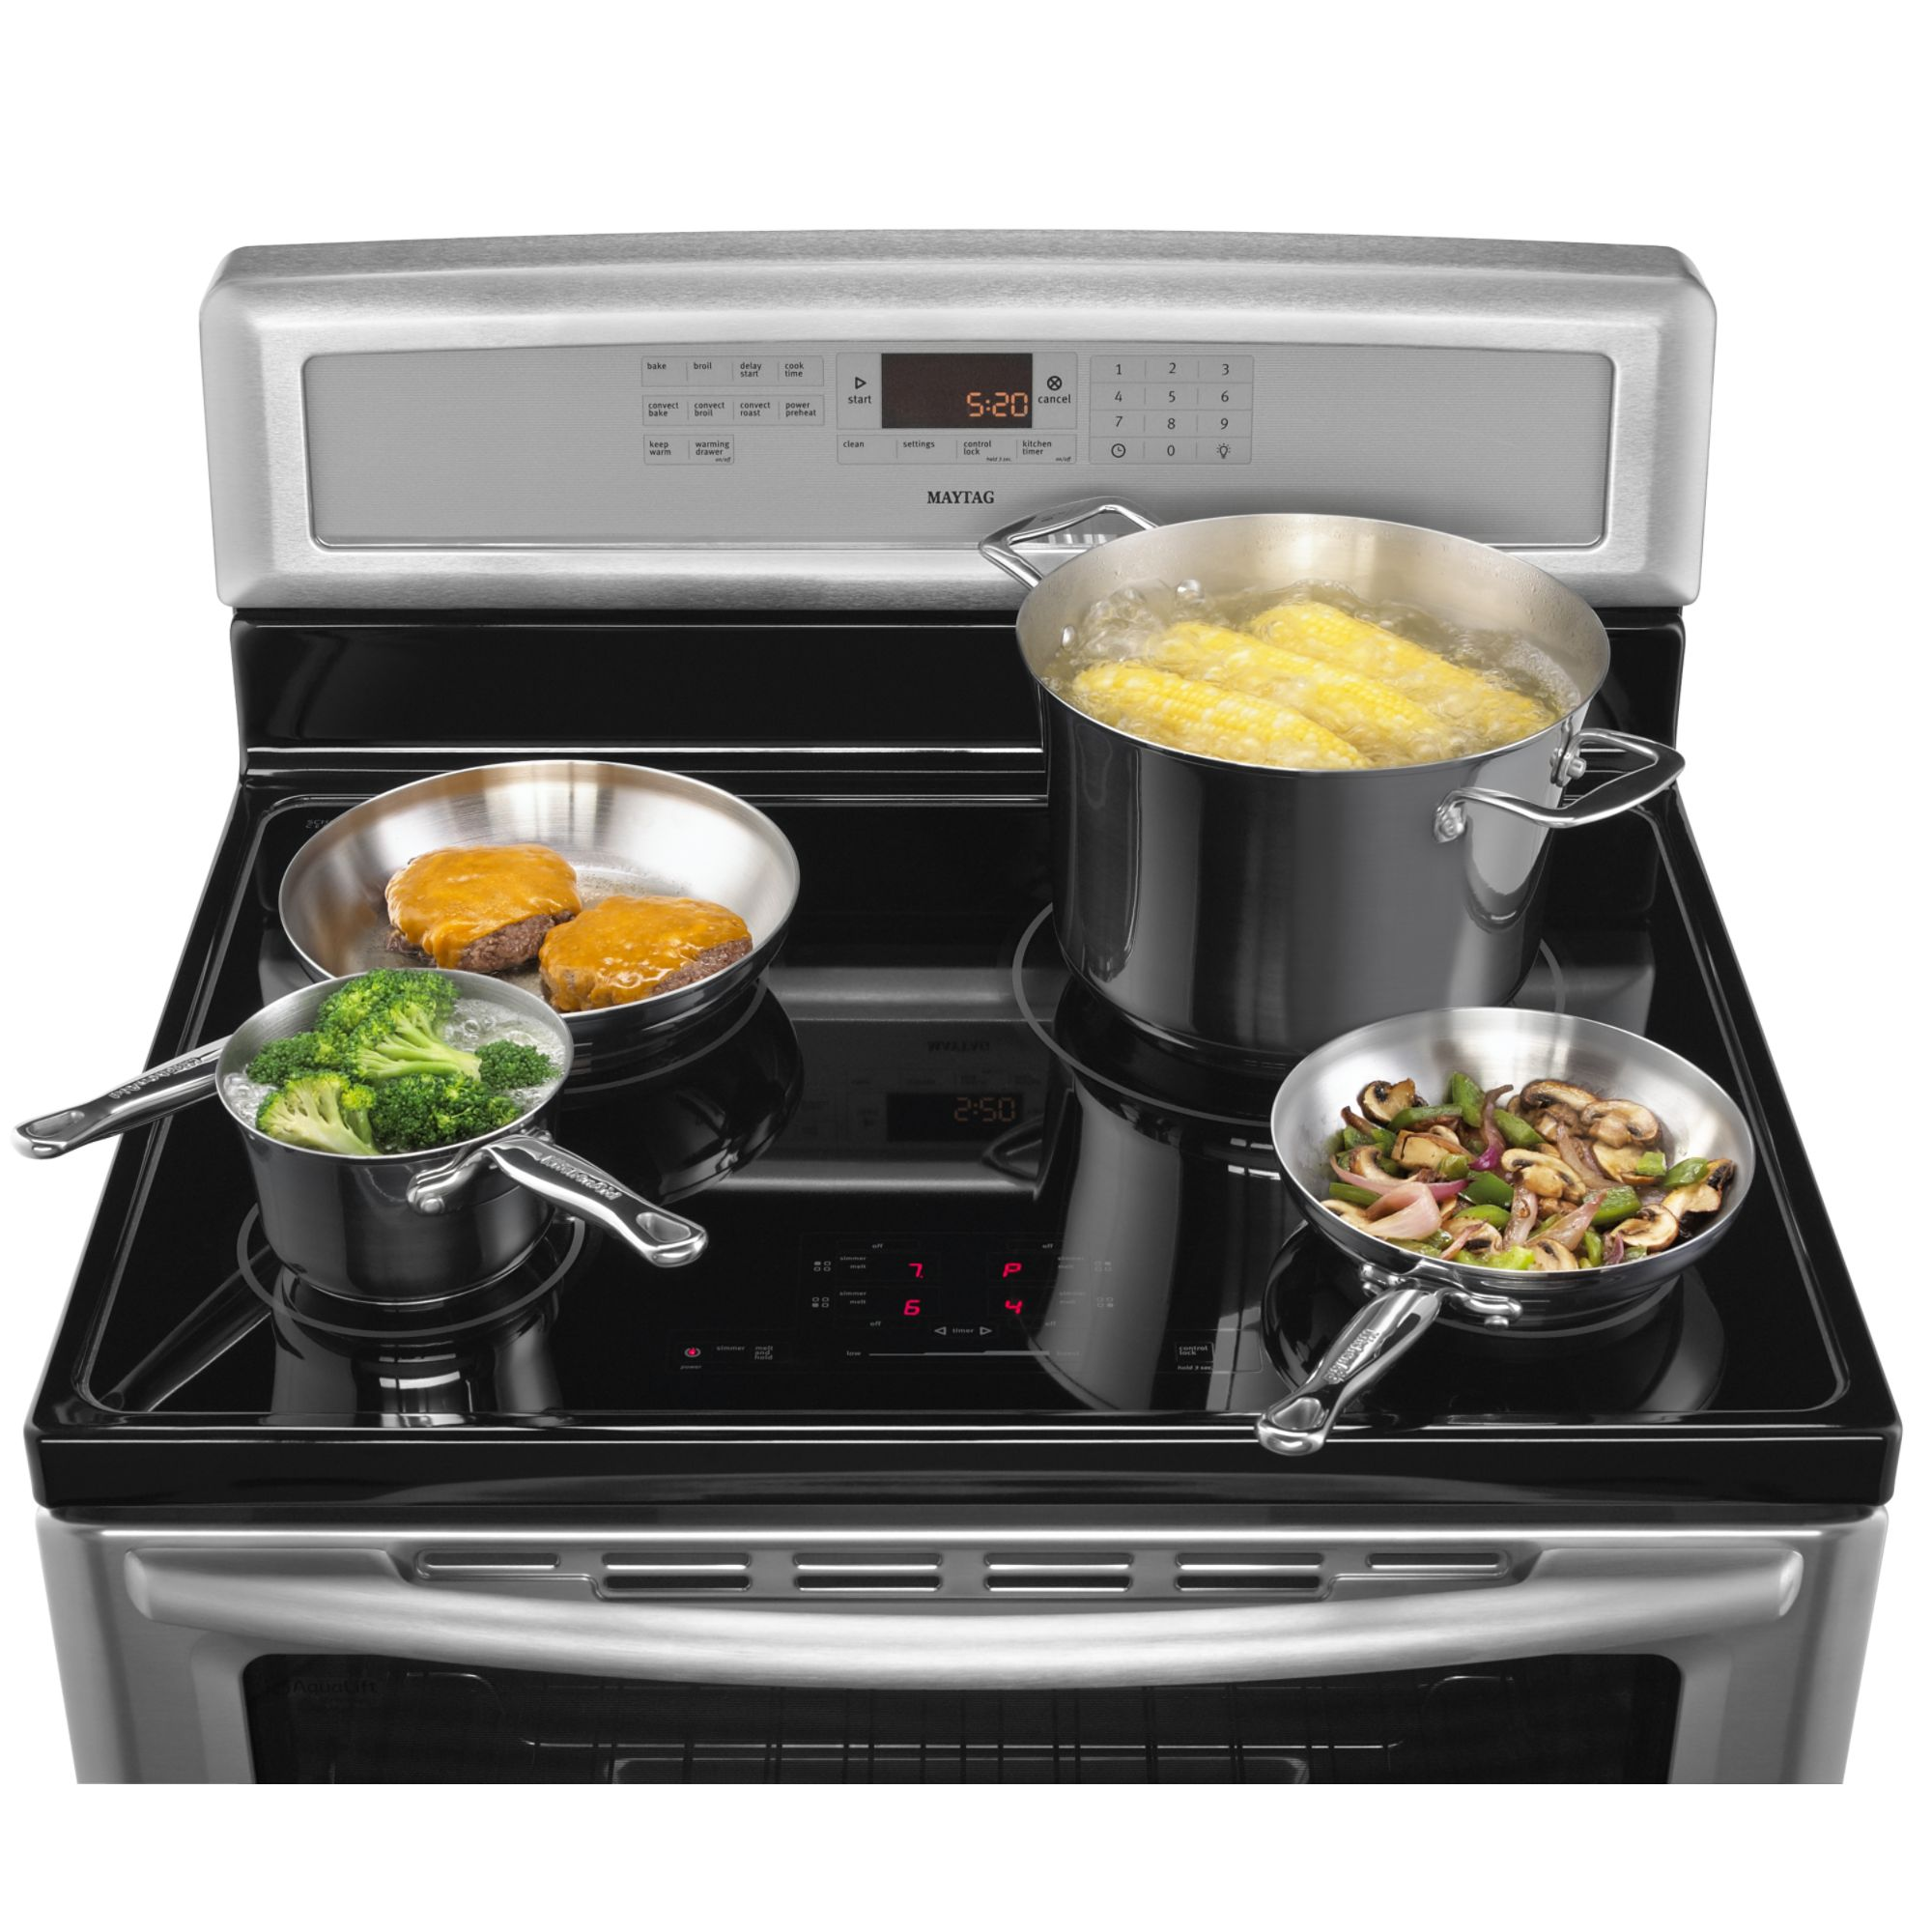 Maytag 6.2 cu. ft. Induction Electric Range